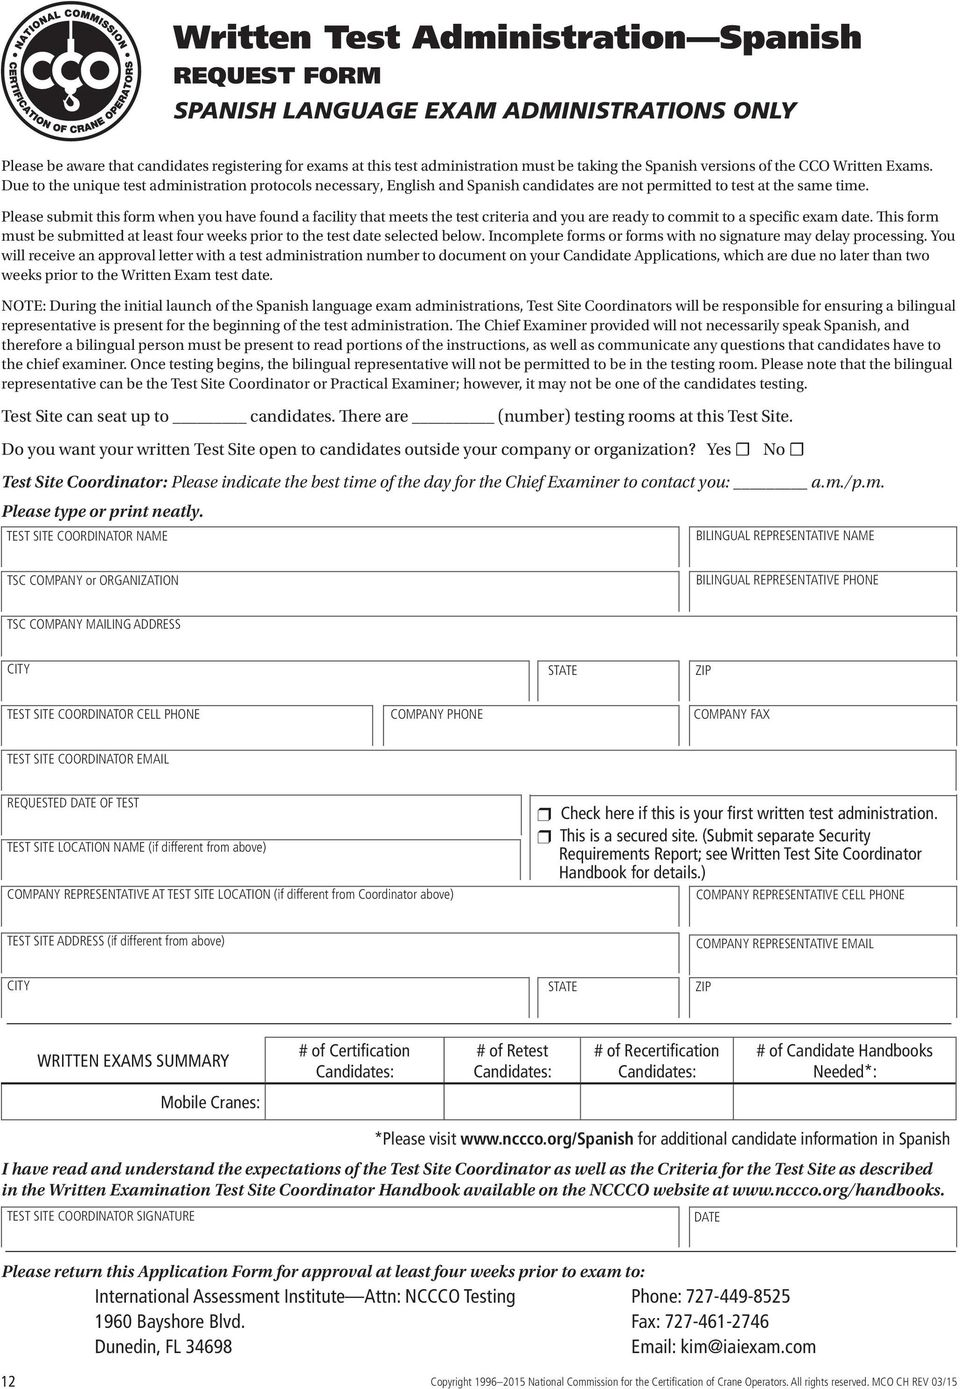 Please submit this form when you have found a facility that meets the test criteria and you are ready to commit to a specific exam date.